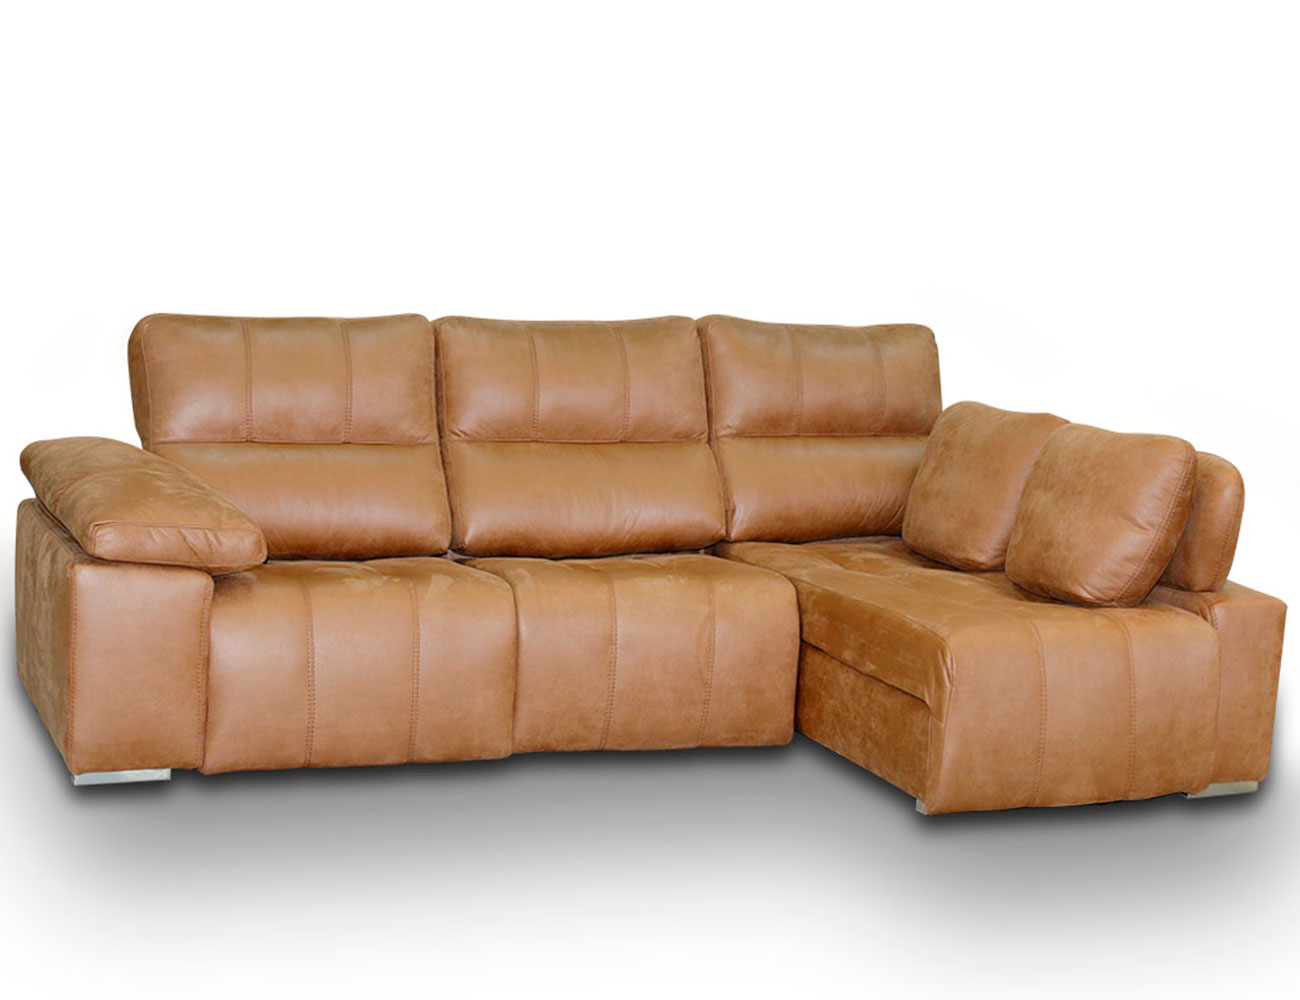 Sofa chaiselongue relax 2 motores anti manchas11